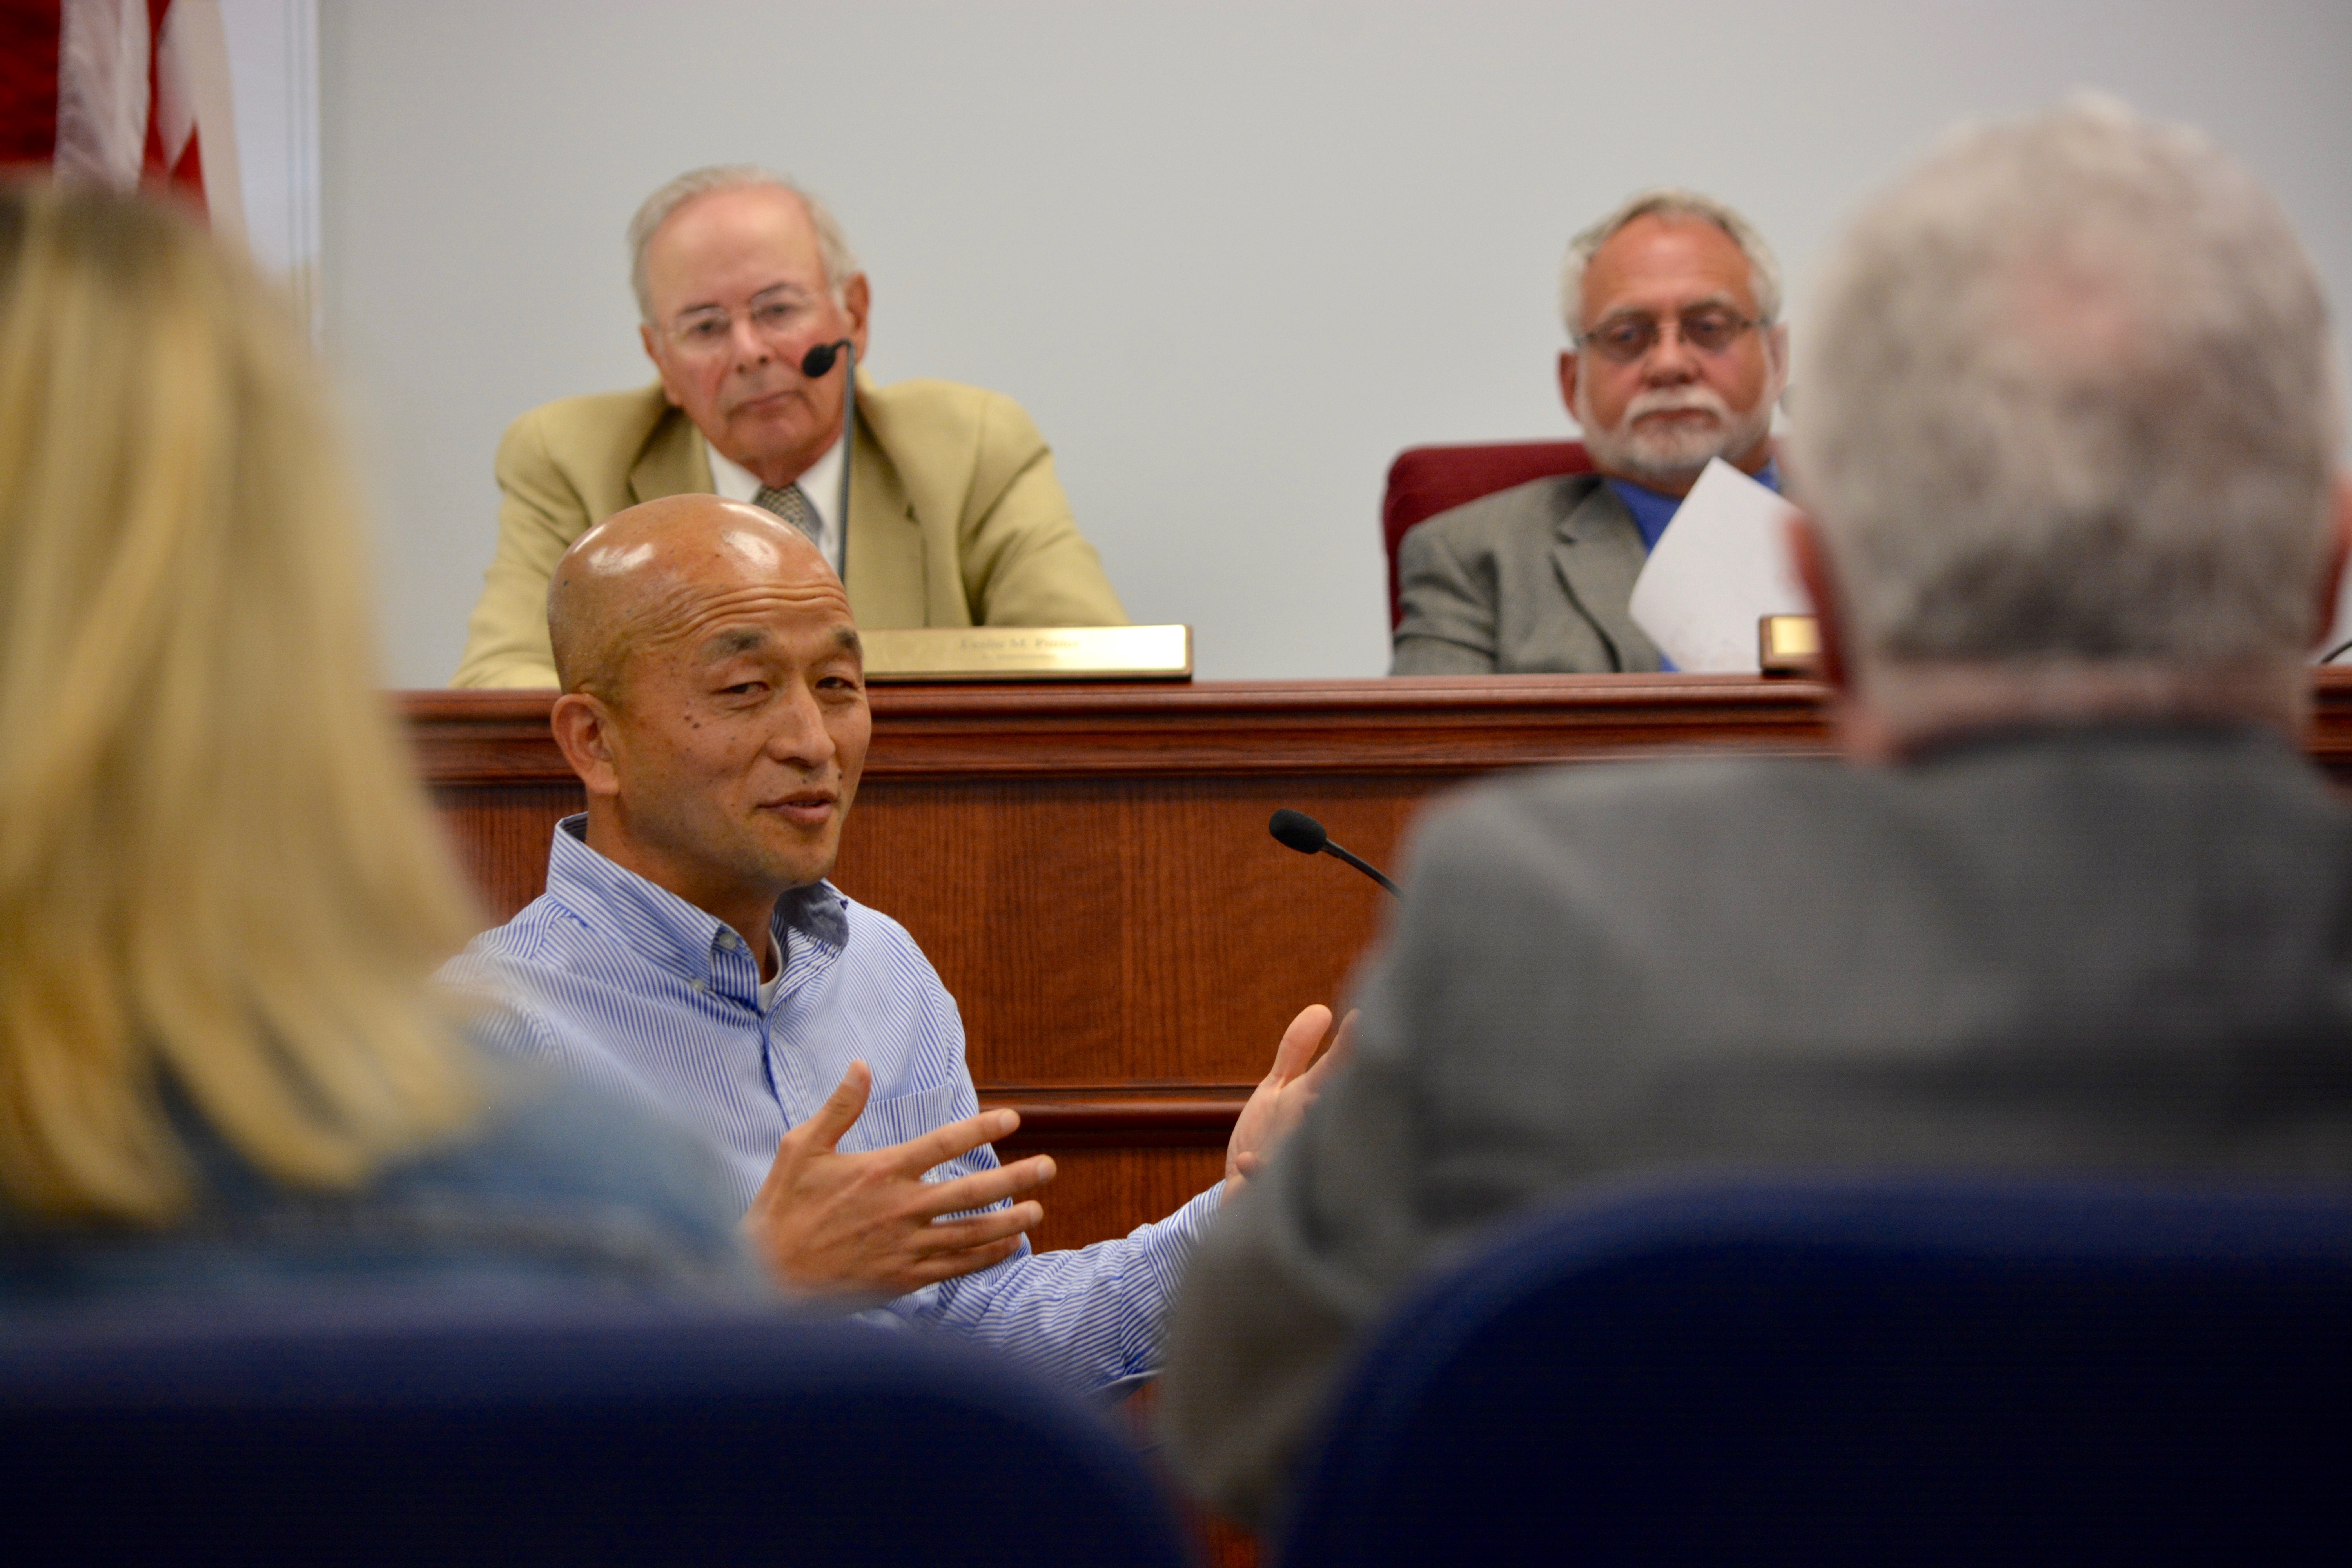 Steve Kim delivers testimony to the Baltimore County Liquor Board as it hears his application for a liquor license Monday, May 1. The license was denied.